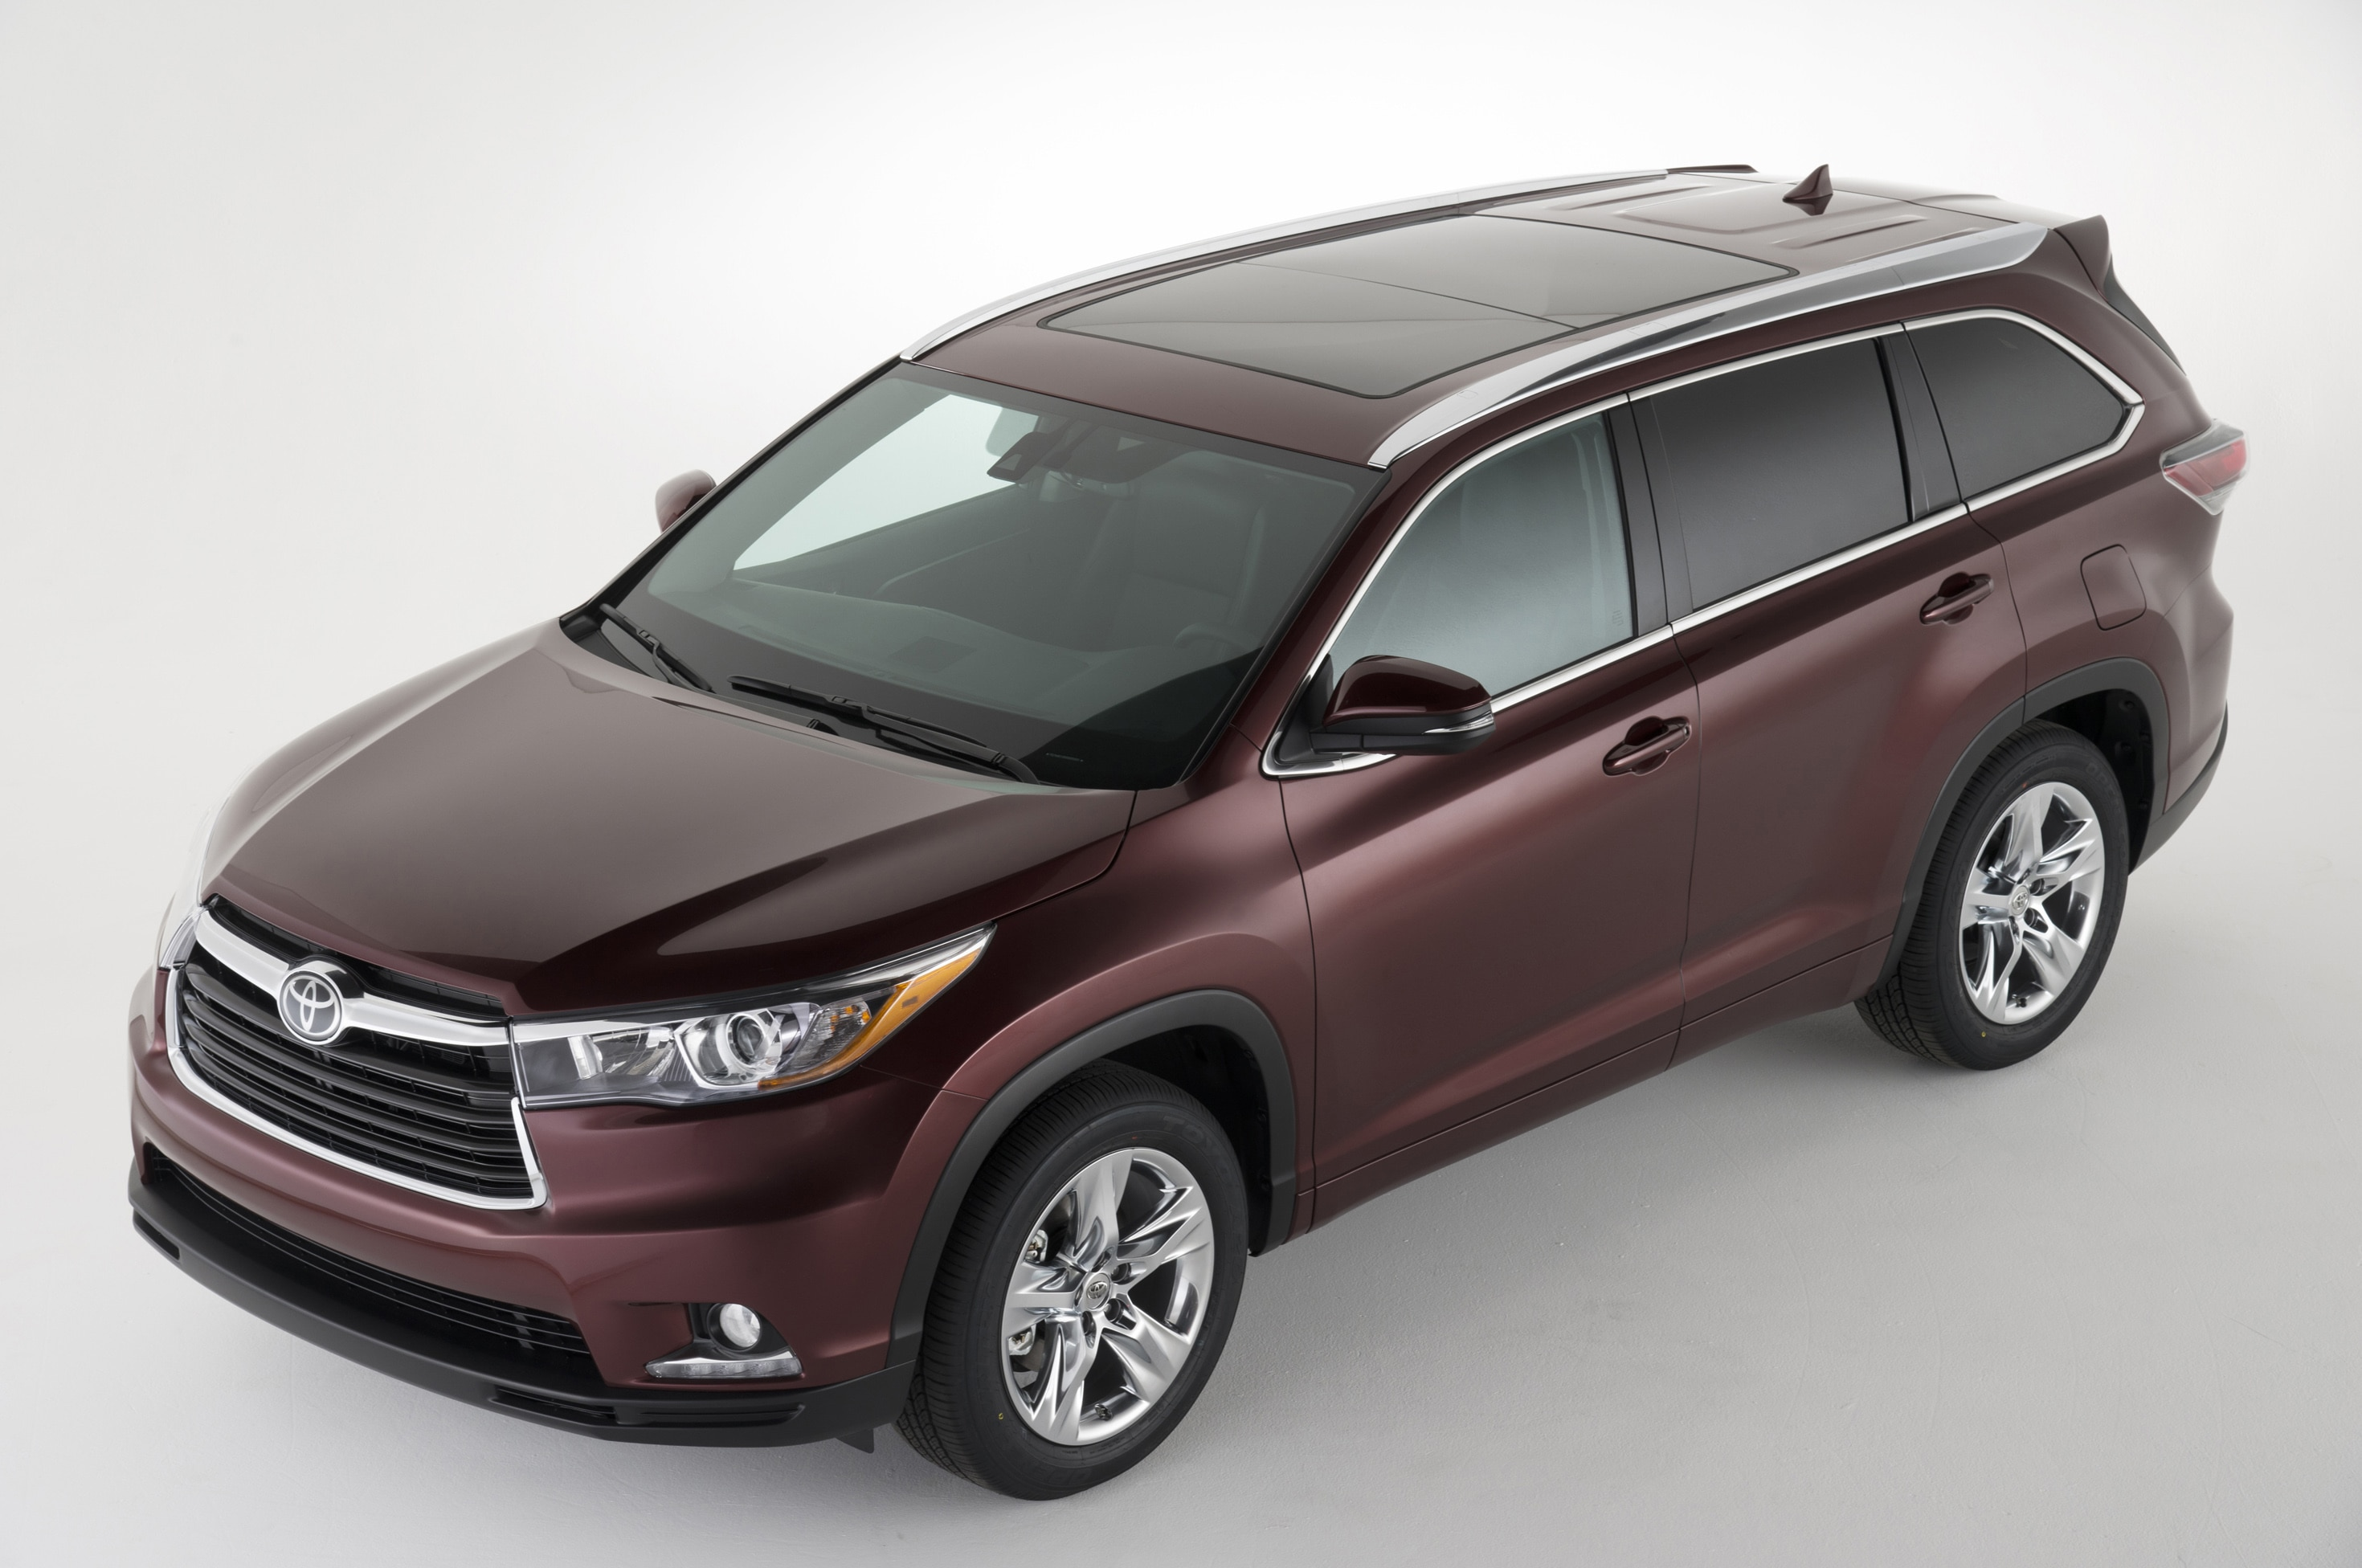 toyota sc hill vin highlander rock htm near sale fort waxhaw nc for largethumb charlotte mill suv in used